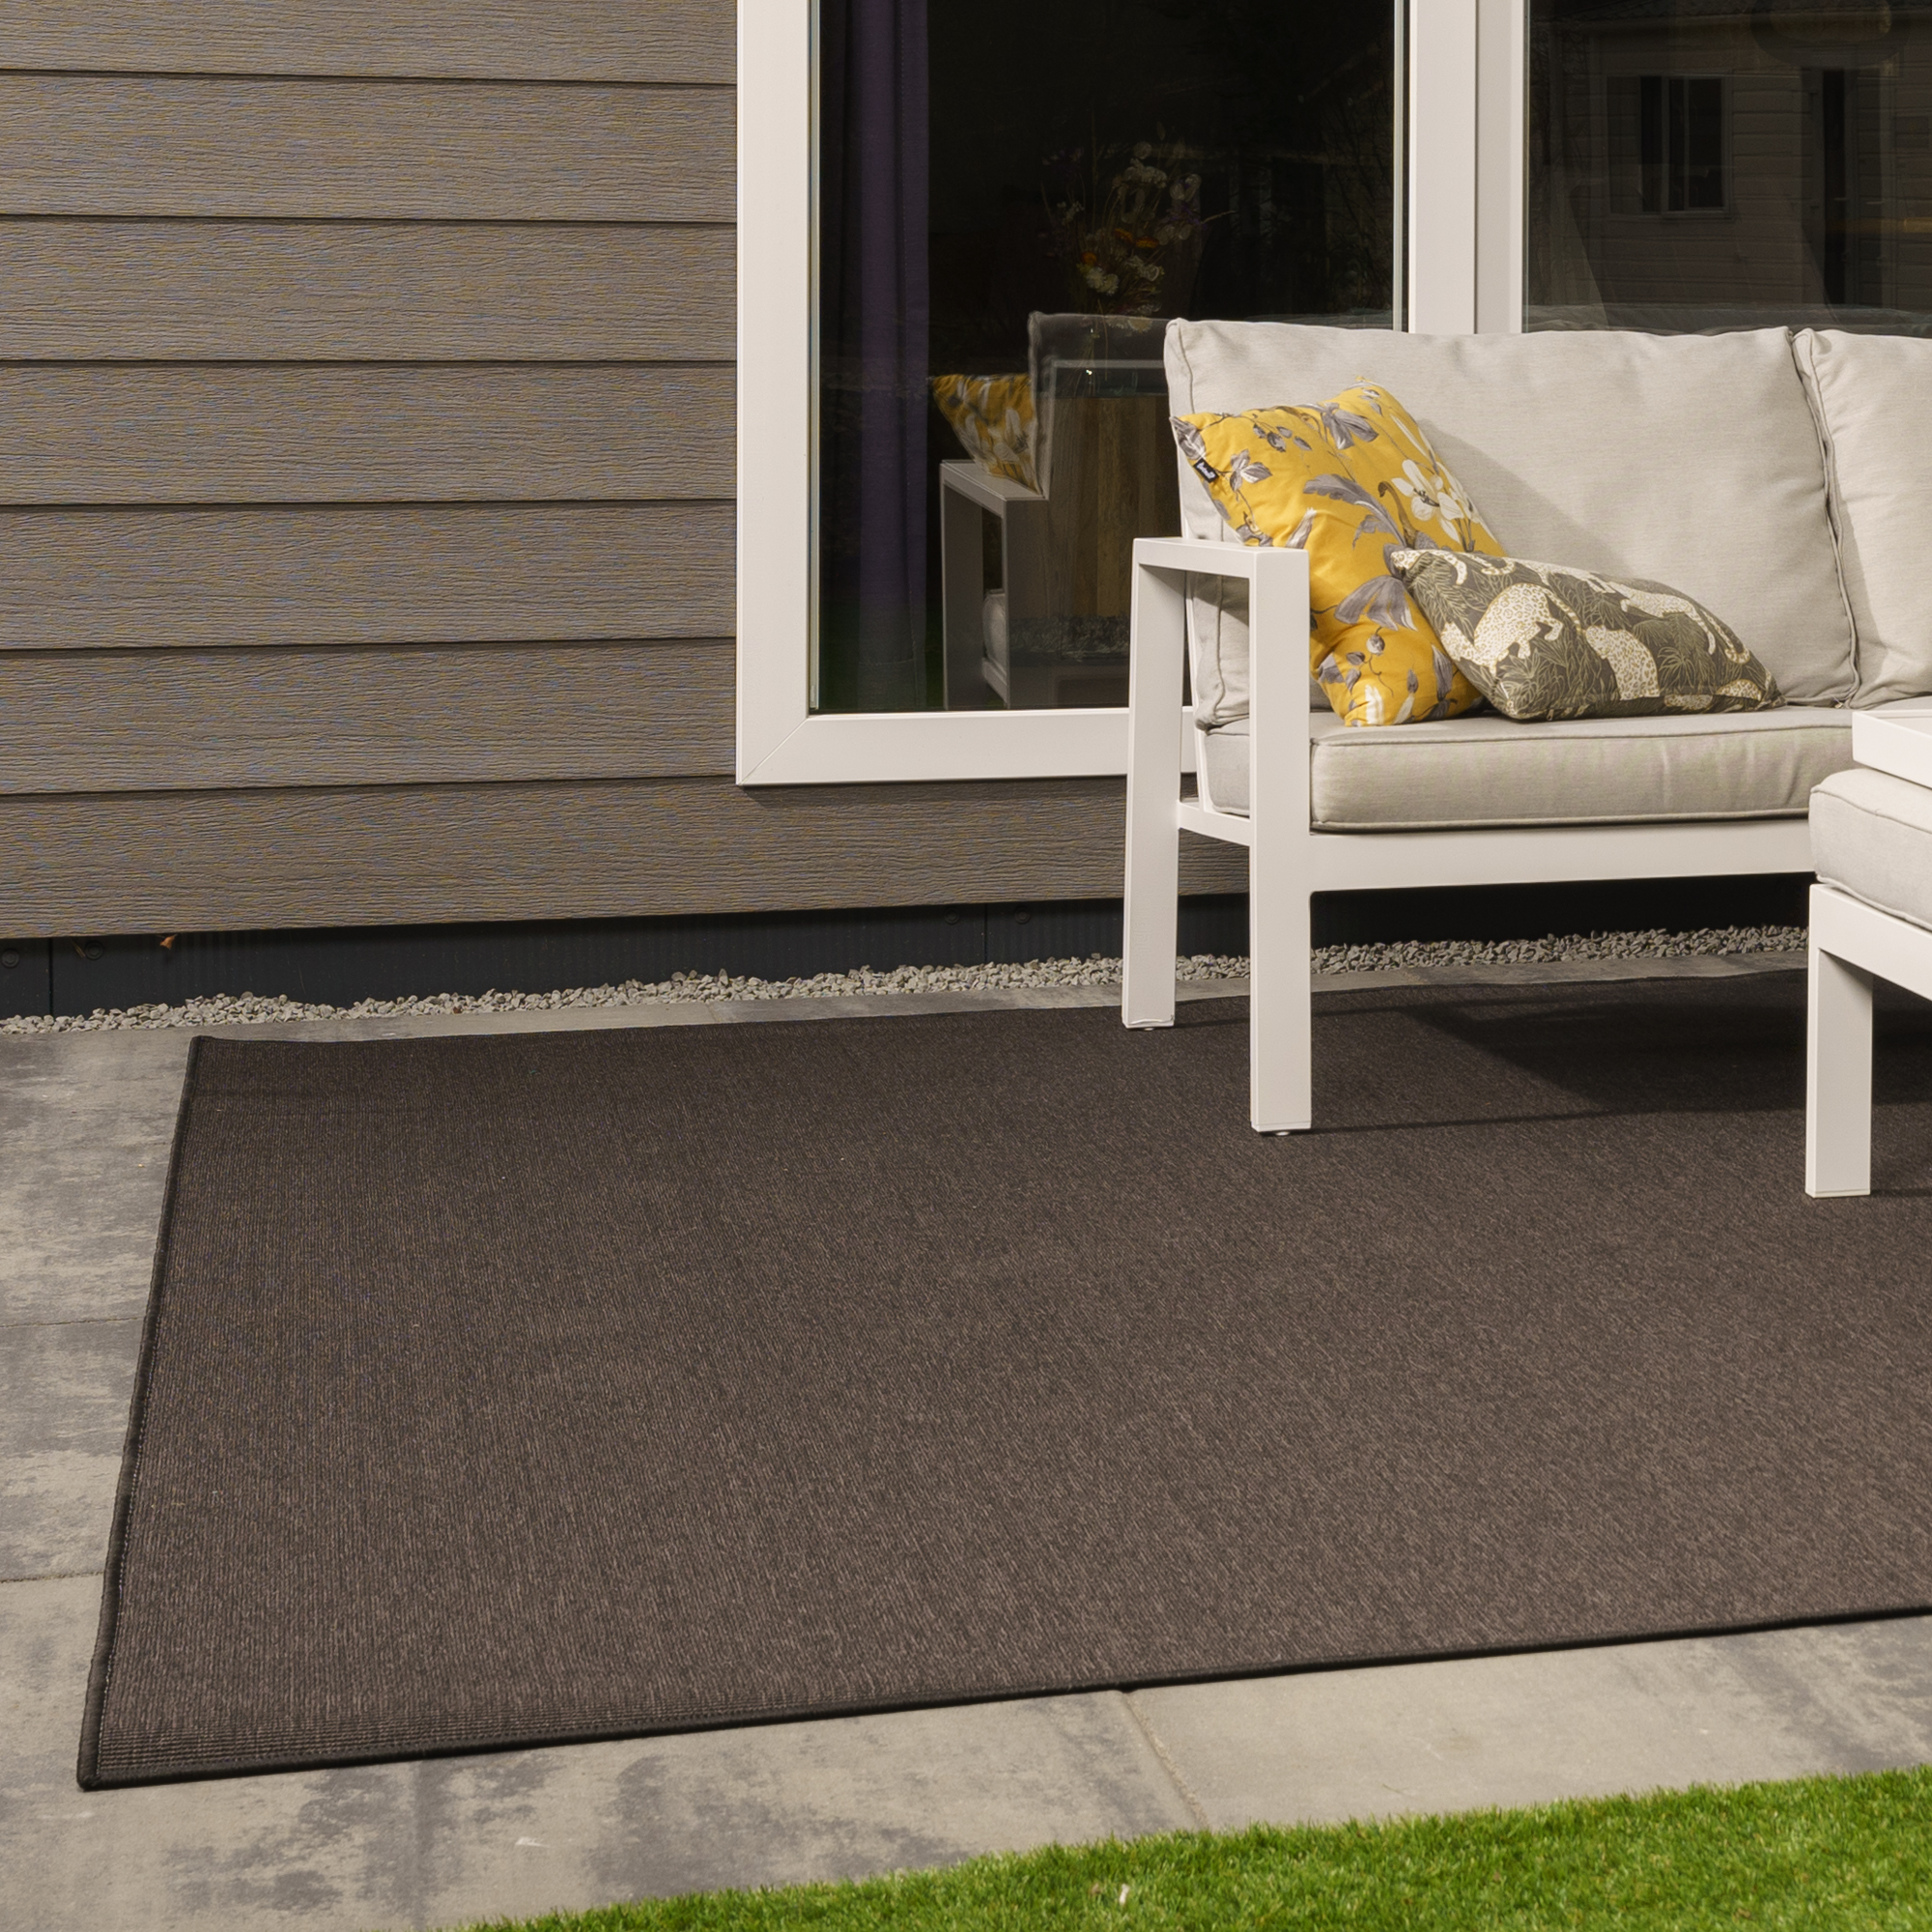 Vloerkleed Xilento Outdoor 4506-96